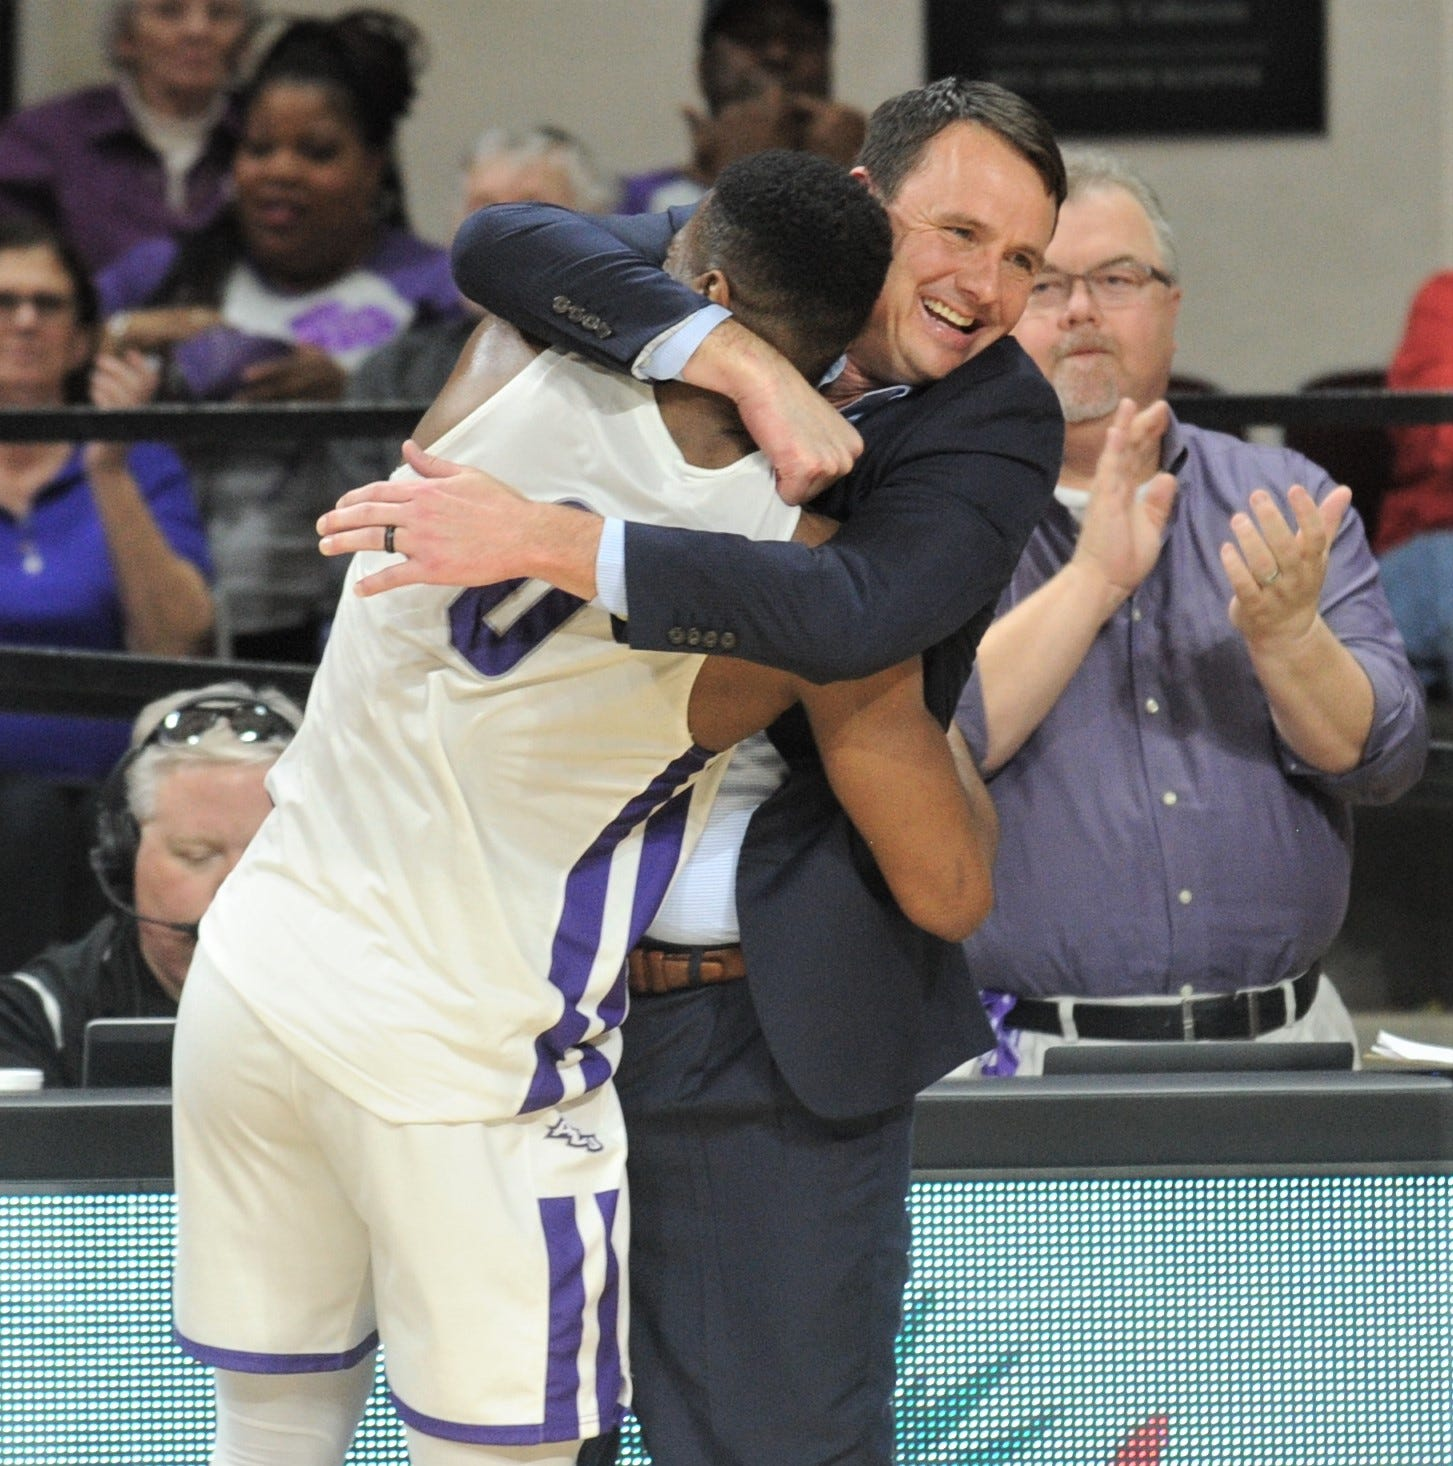 Abilene Christian coach will face UK wearing the pants he ripped in celebration